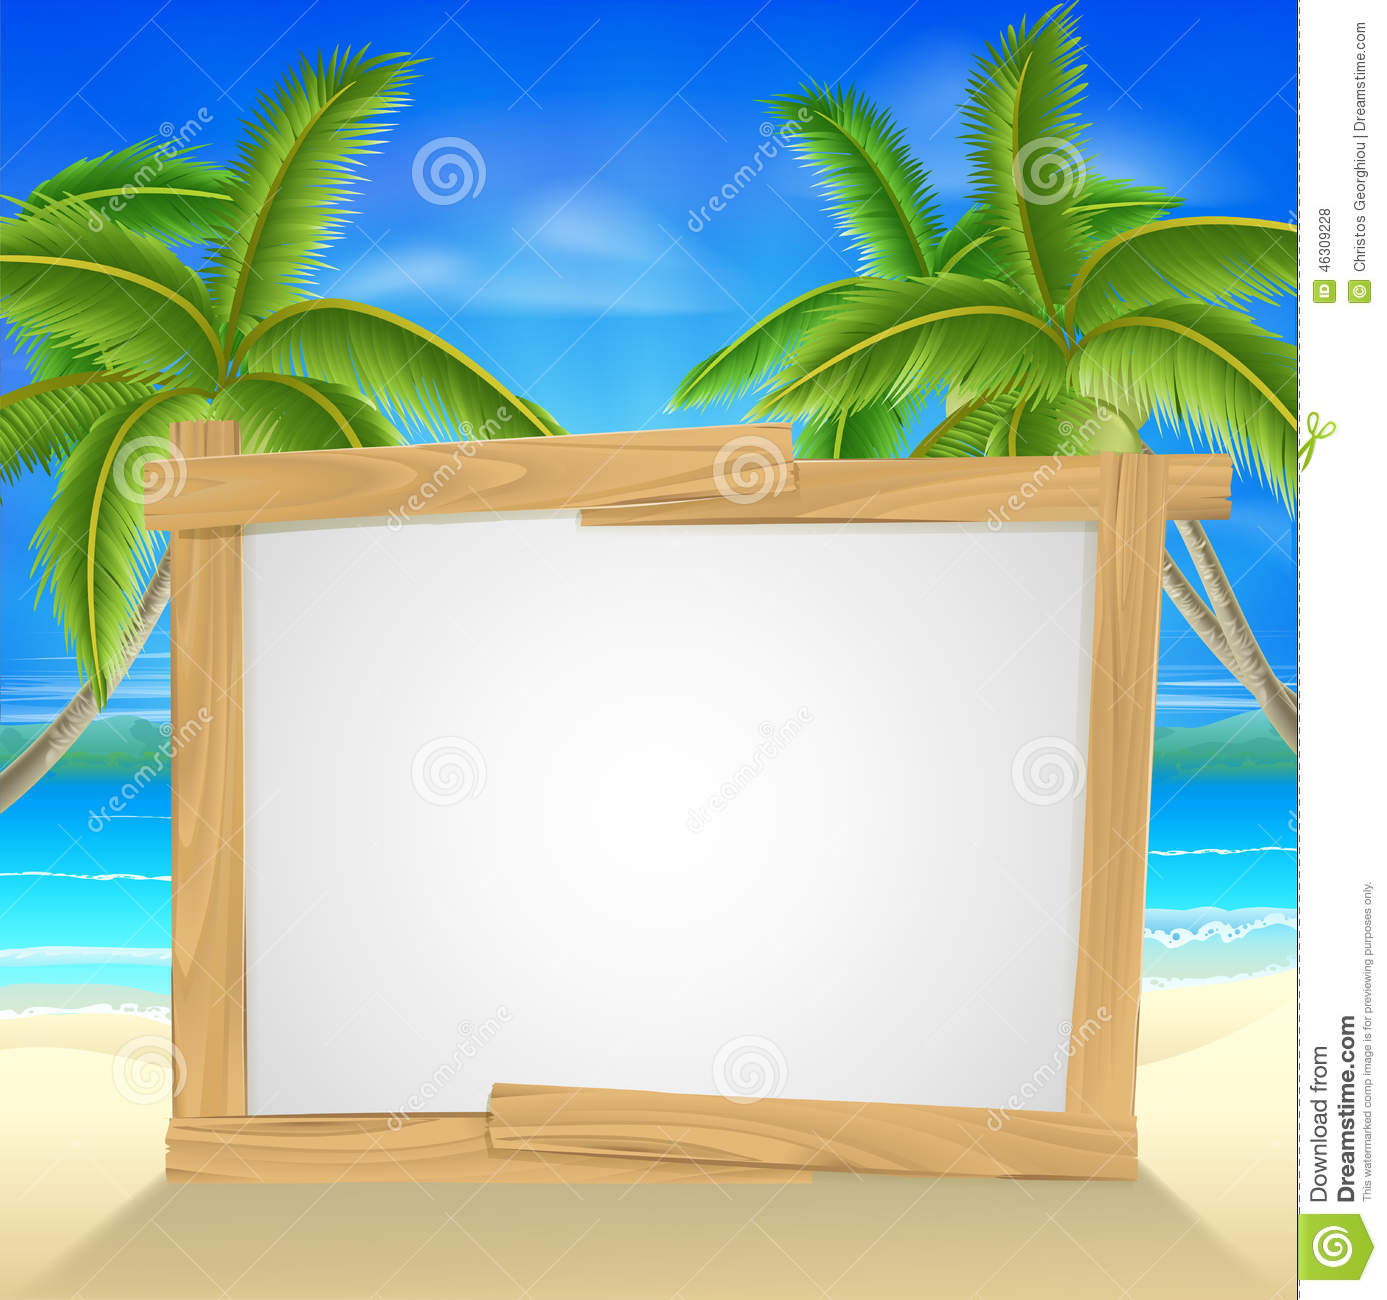 Beach Holiday Palm Tree Sign Stock Vector - Image: 46309228